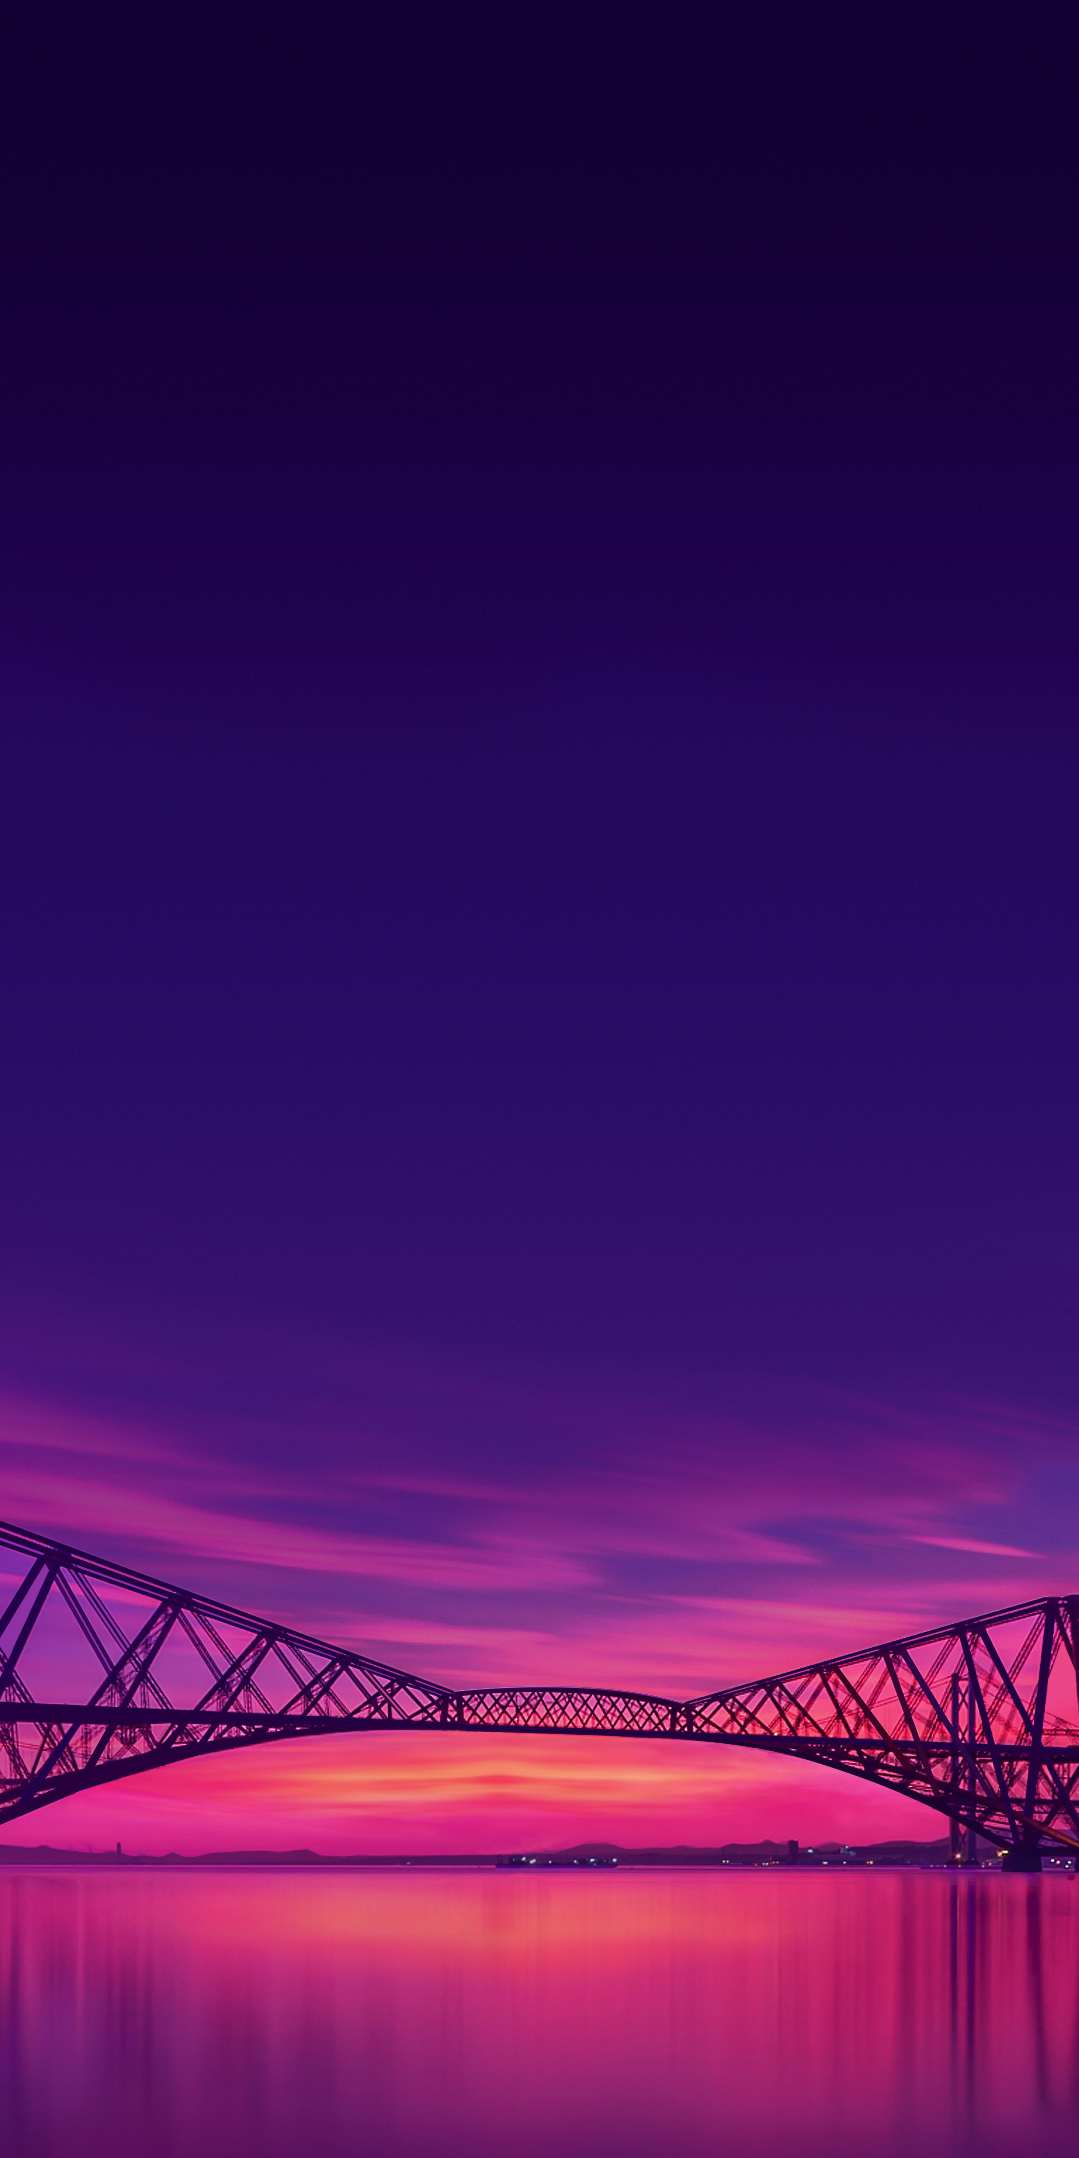 Sunset River Bridge iPhone Wallpaper